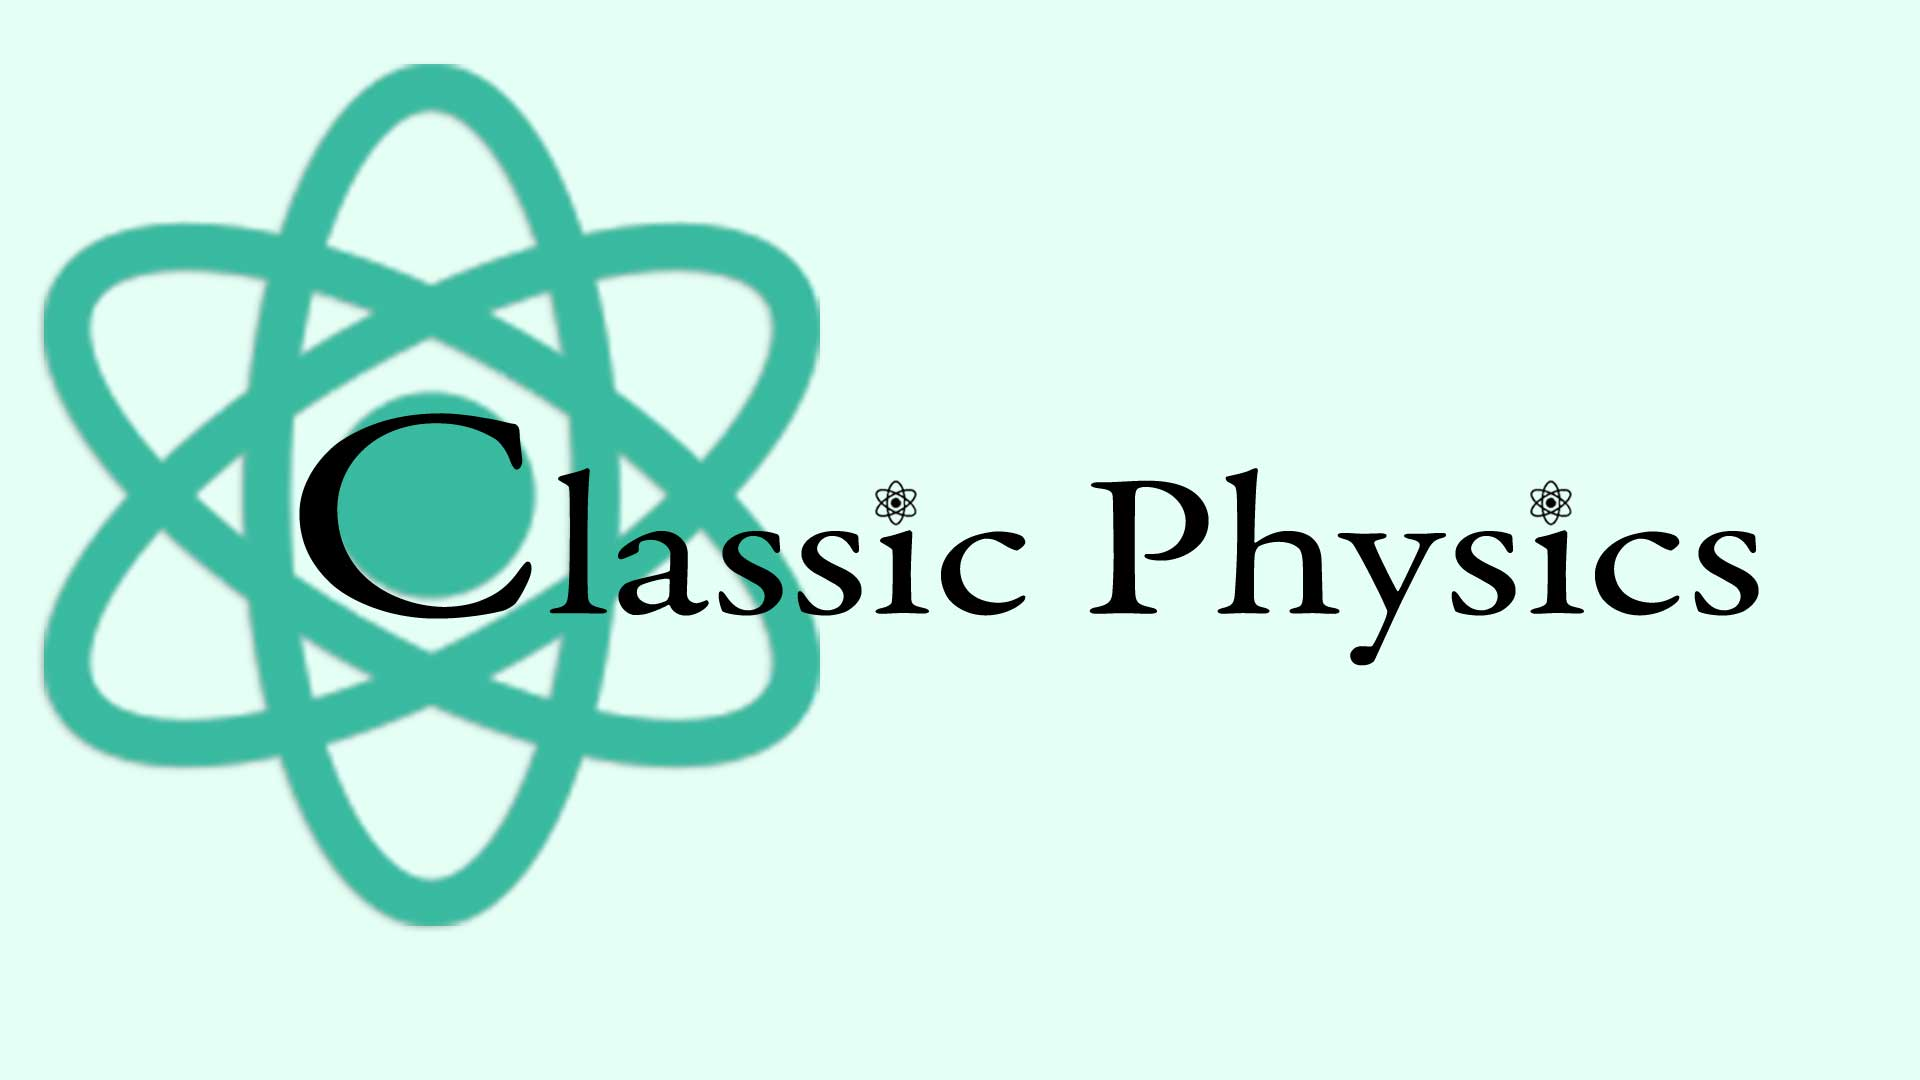 Classical Physics Graphics with Atom